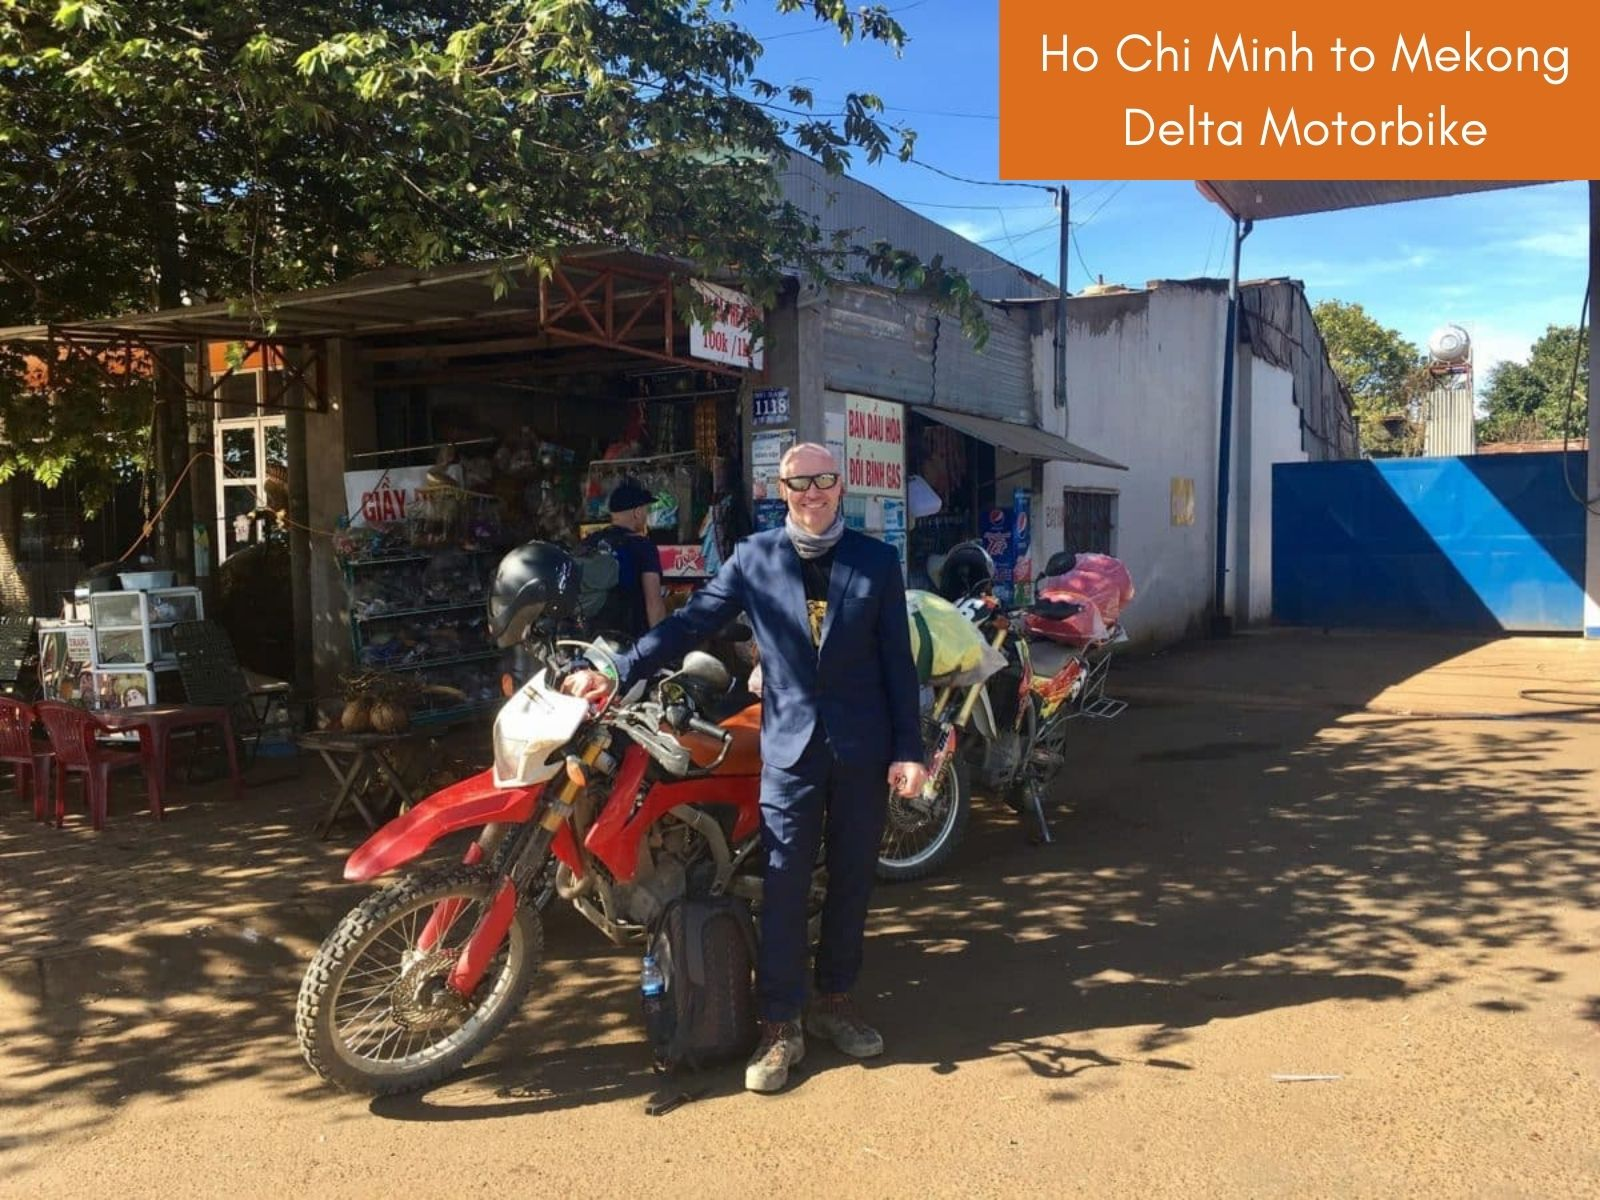 Ho Chi Minh to Mekong Delta by motorbike